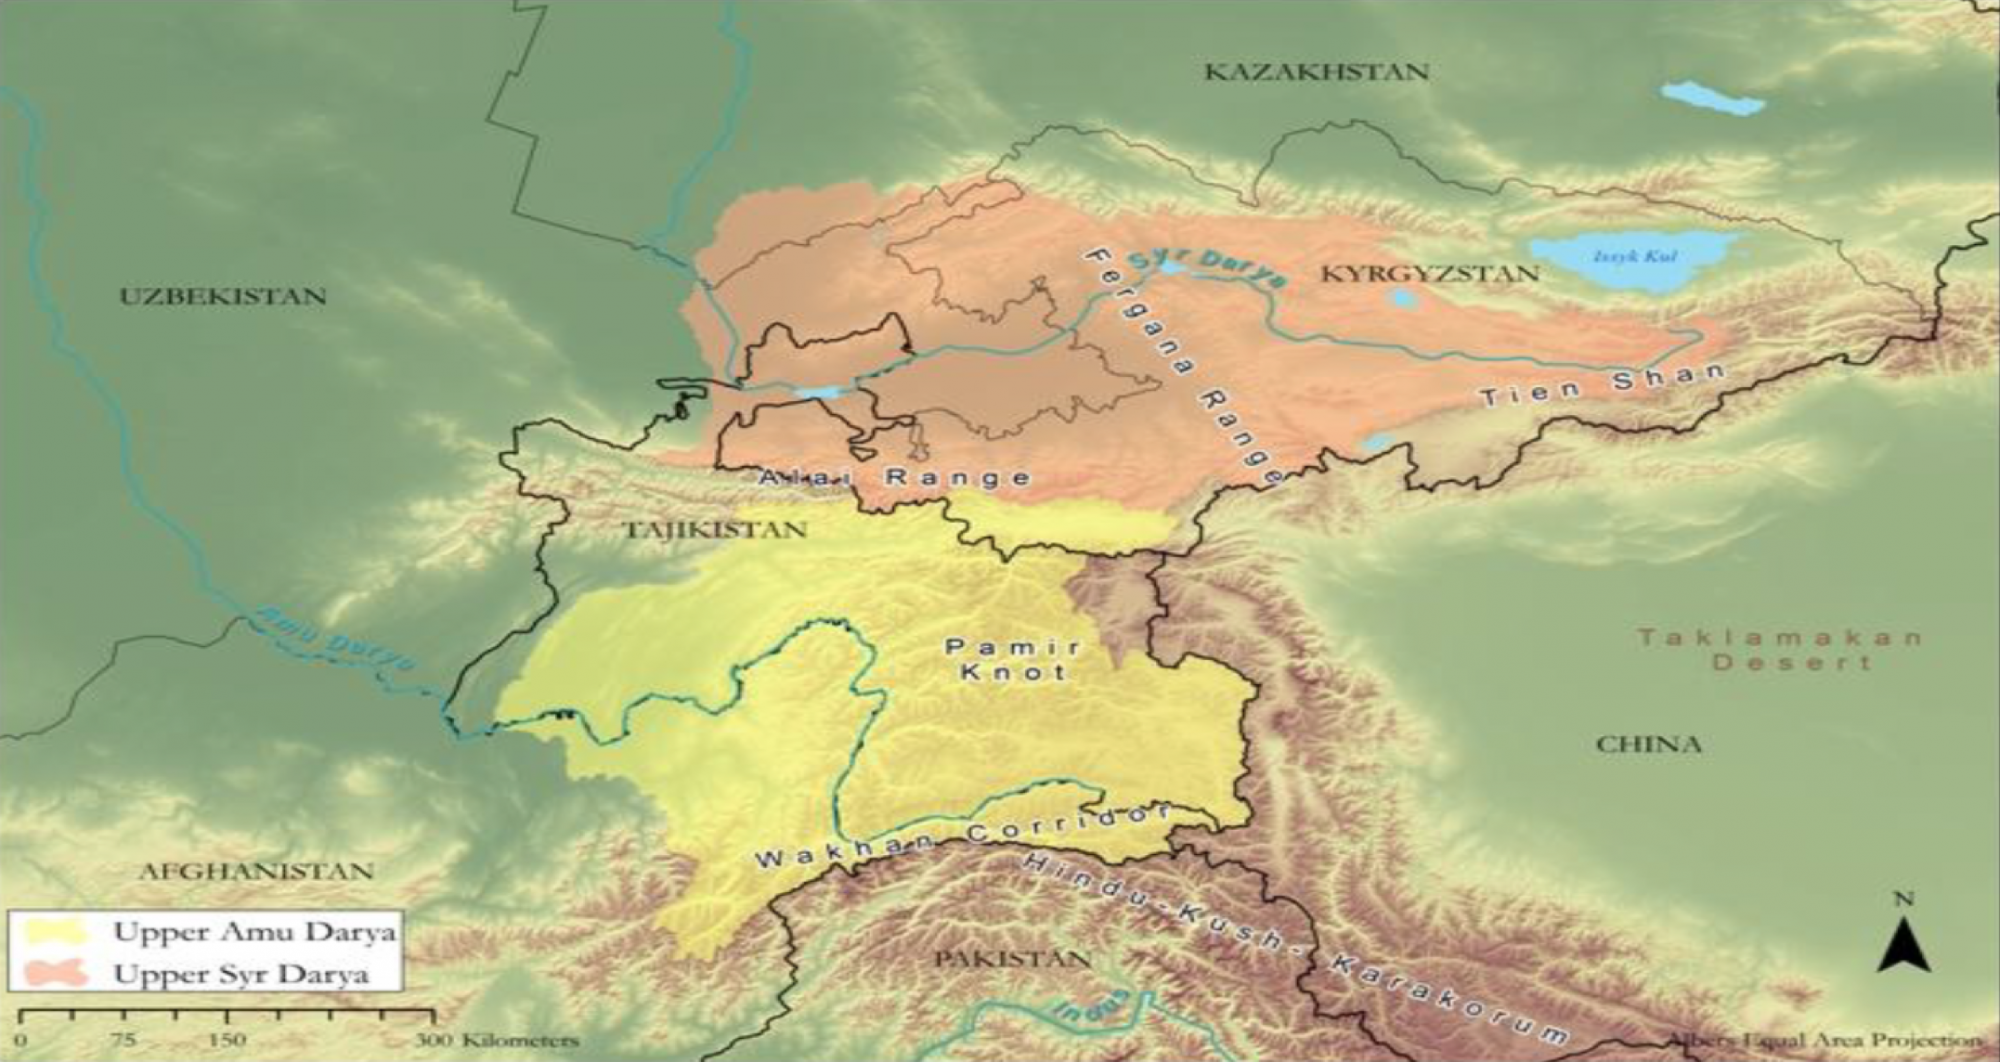 Pamir Mountains Archives - GlacierHub on map of taklimakan desert, map of western ghats, map of afghanistan, map of aral sea, map of sierra madre occidental, map of bhutan, map of mongolia, map of kashgar, map of tibet, map of indus river, map of uzbekistan, map of zabul province, map of madagascar, map of pakistan, map of tien shan, map of singapore, map of cordillera oriental, map of caspian sea region, map of bamyan province, map of yemen,